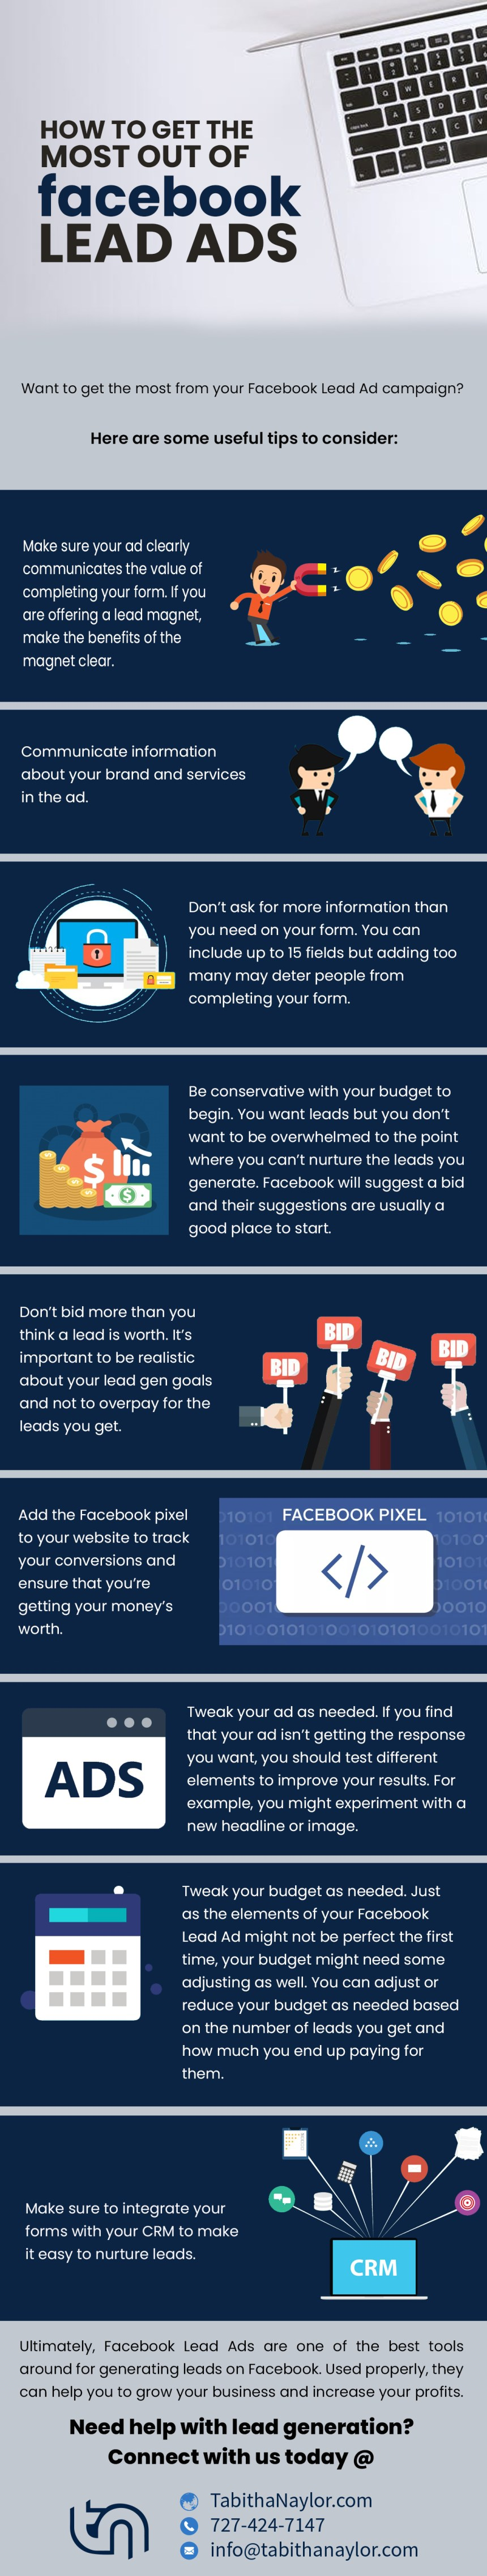 How-to-Get-the-Most-Out-of-Facebook-Lead-Ads-550x2846